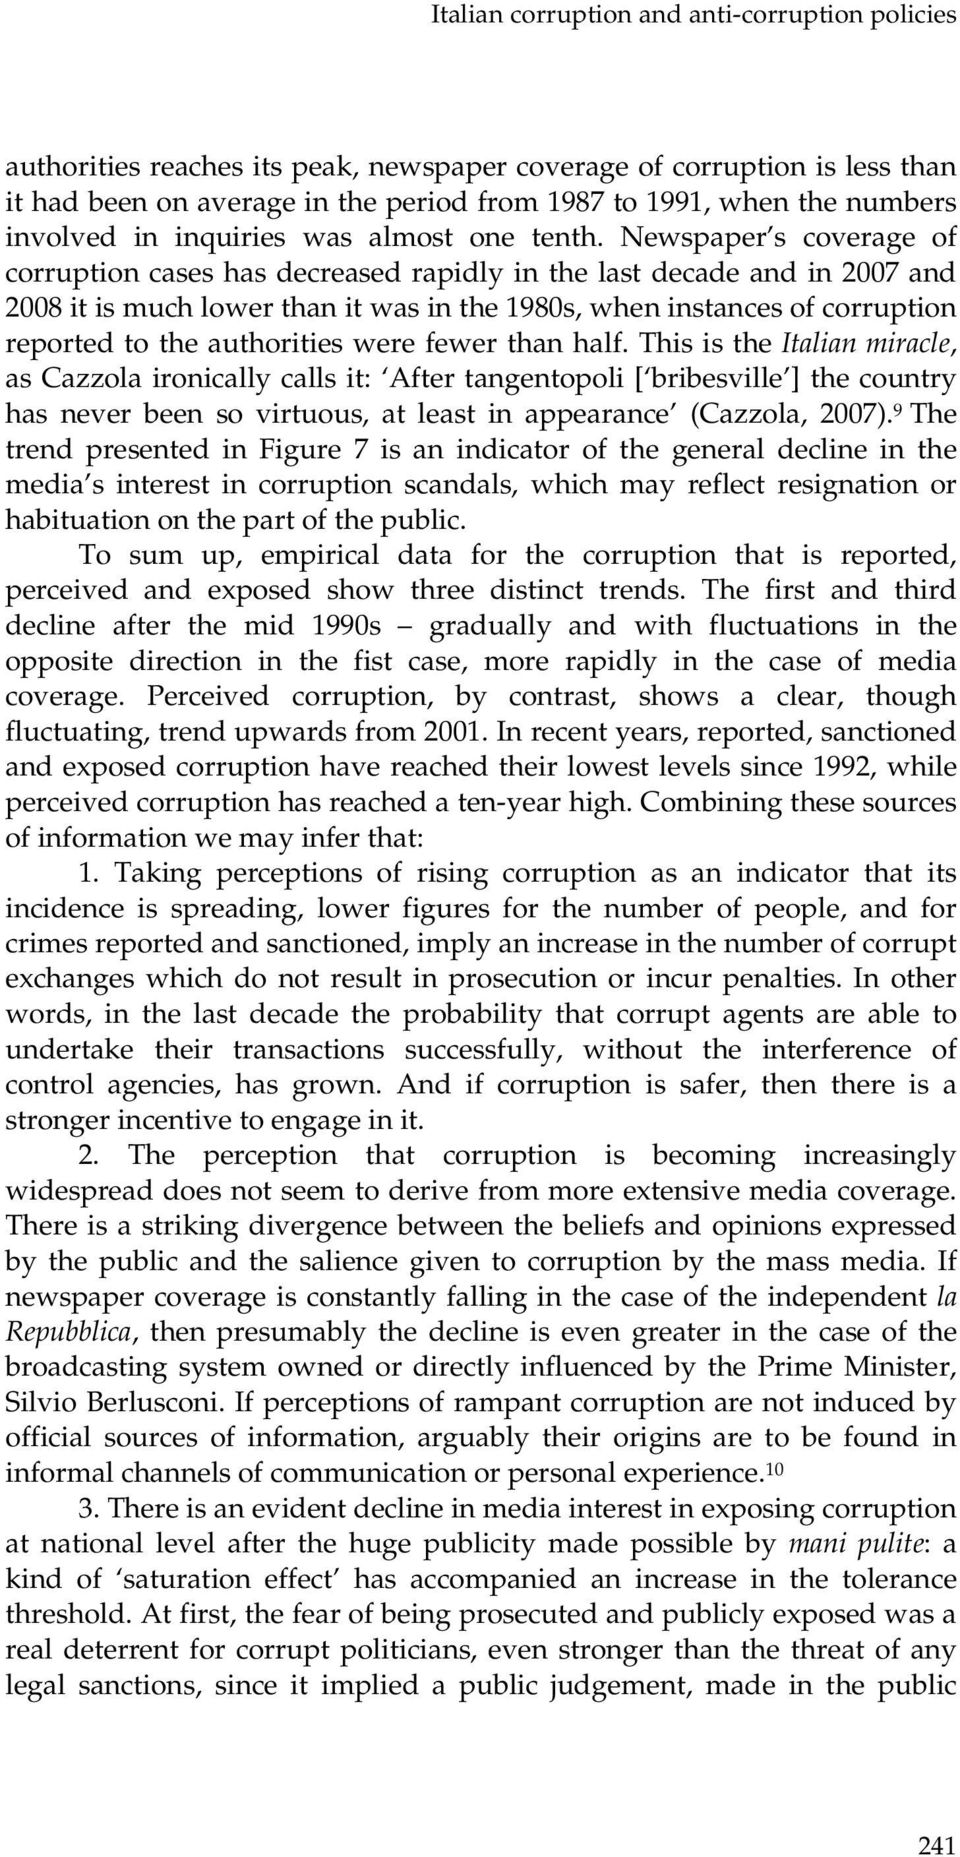 Newspaper s coverage of corruption cases has decreased rapidly in the last decade and in 2007 and 2008 it is much lower than it was in the 1980s, when instances of corruption reported to the